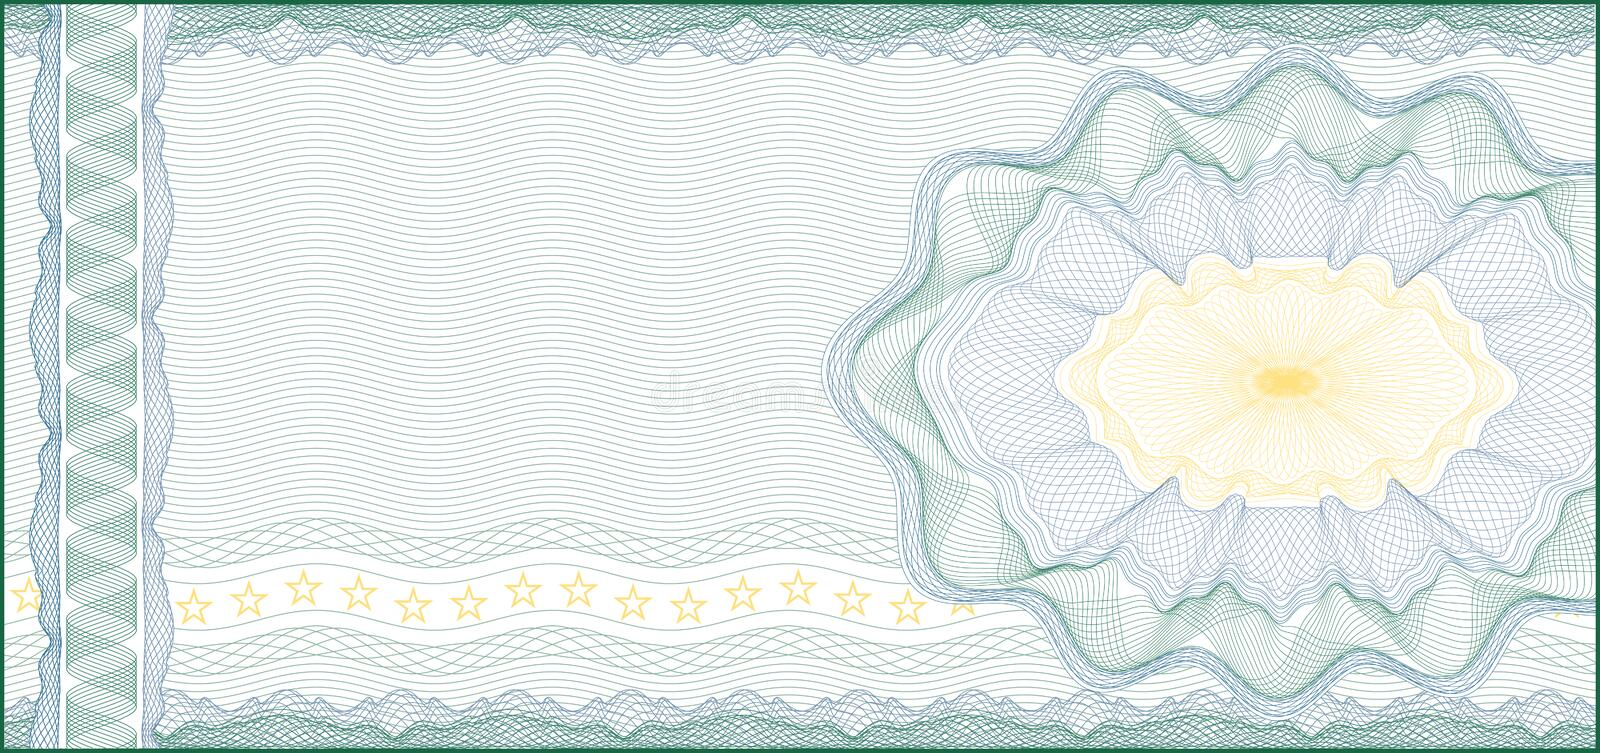 Download For Voucher, Gift Certificate, Coupon Or Banknote Stock Vector - Image: 25489833